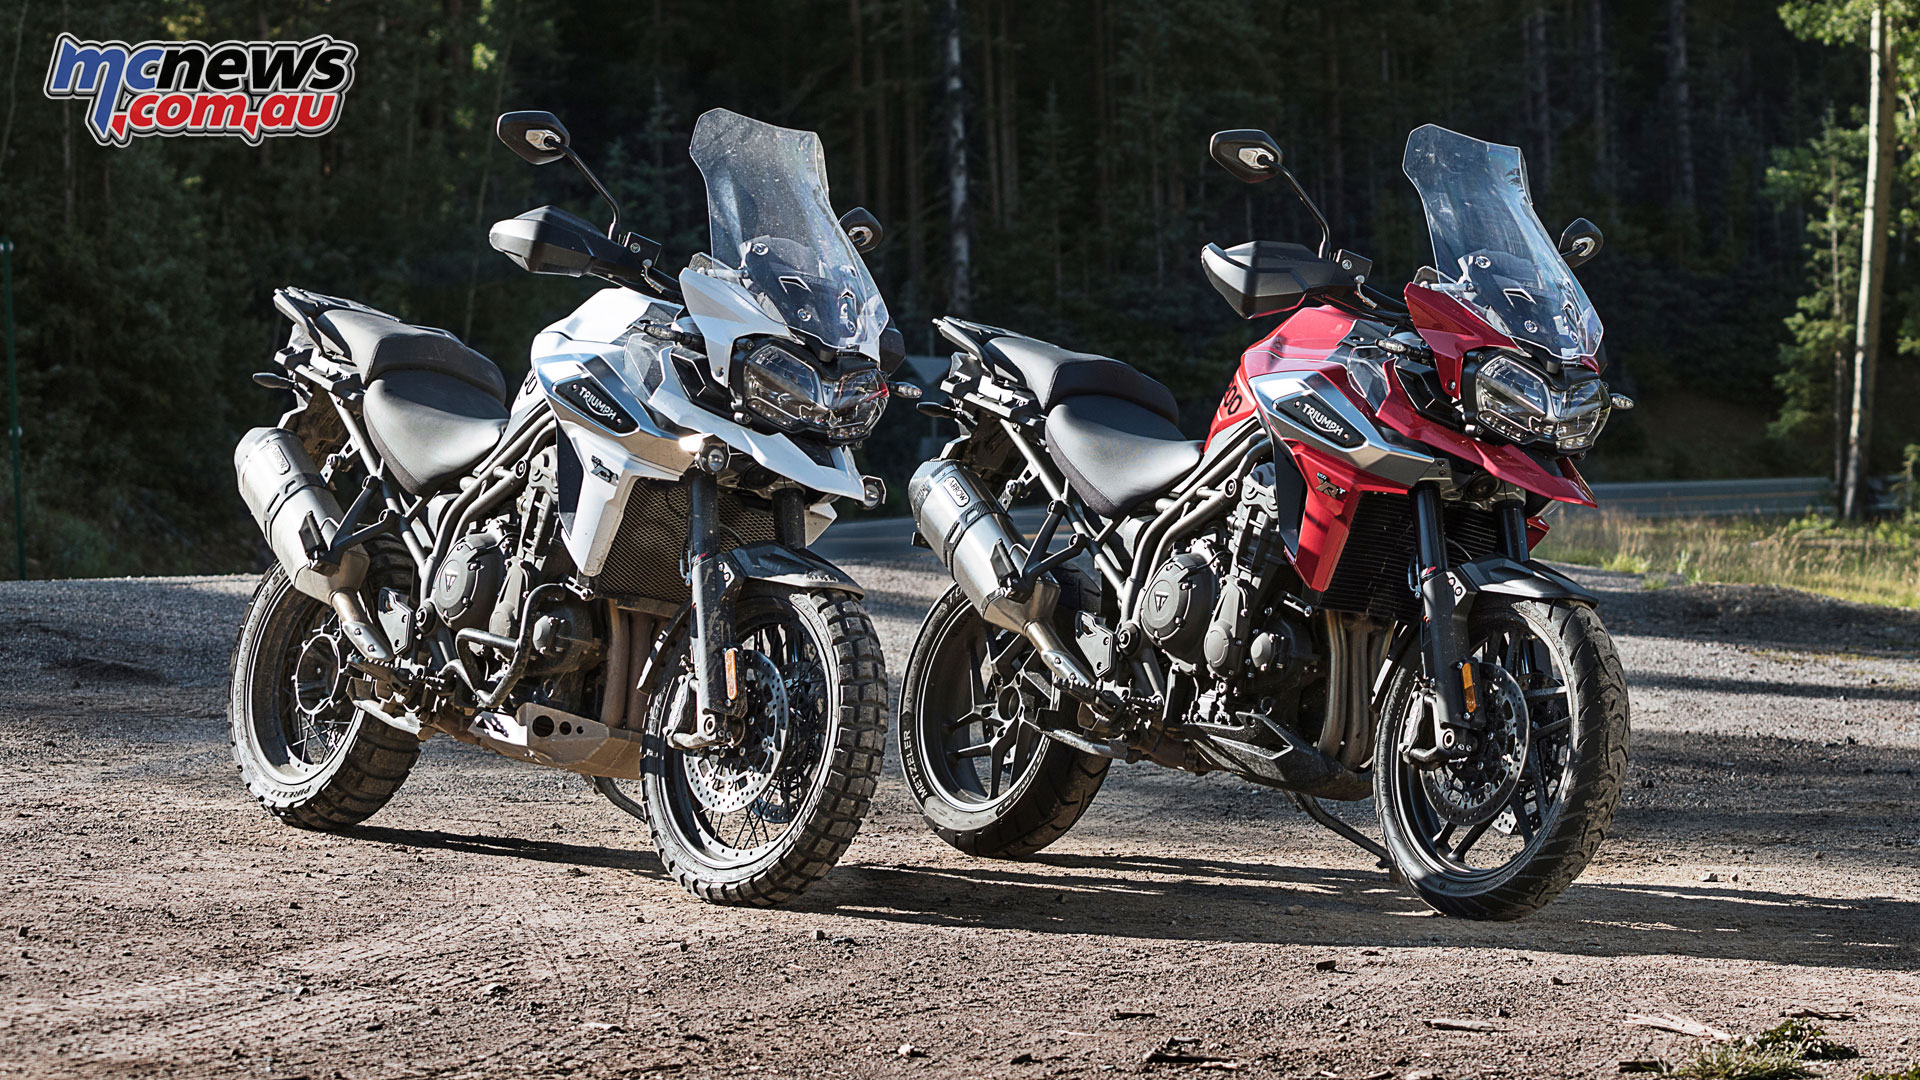 Triumph Tiger 800 >> 2018 Tiger 1200s heavily revised | Pricing & Availability | MCNews.com.au | Motorcycle News ...